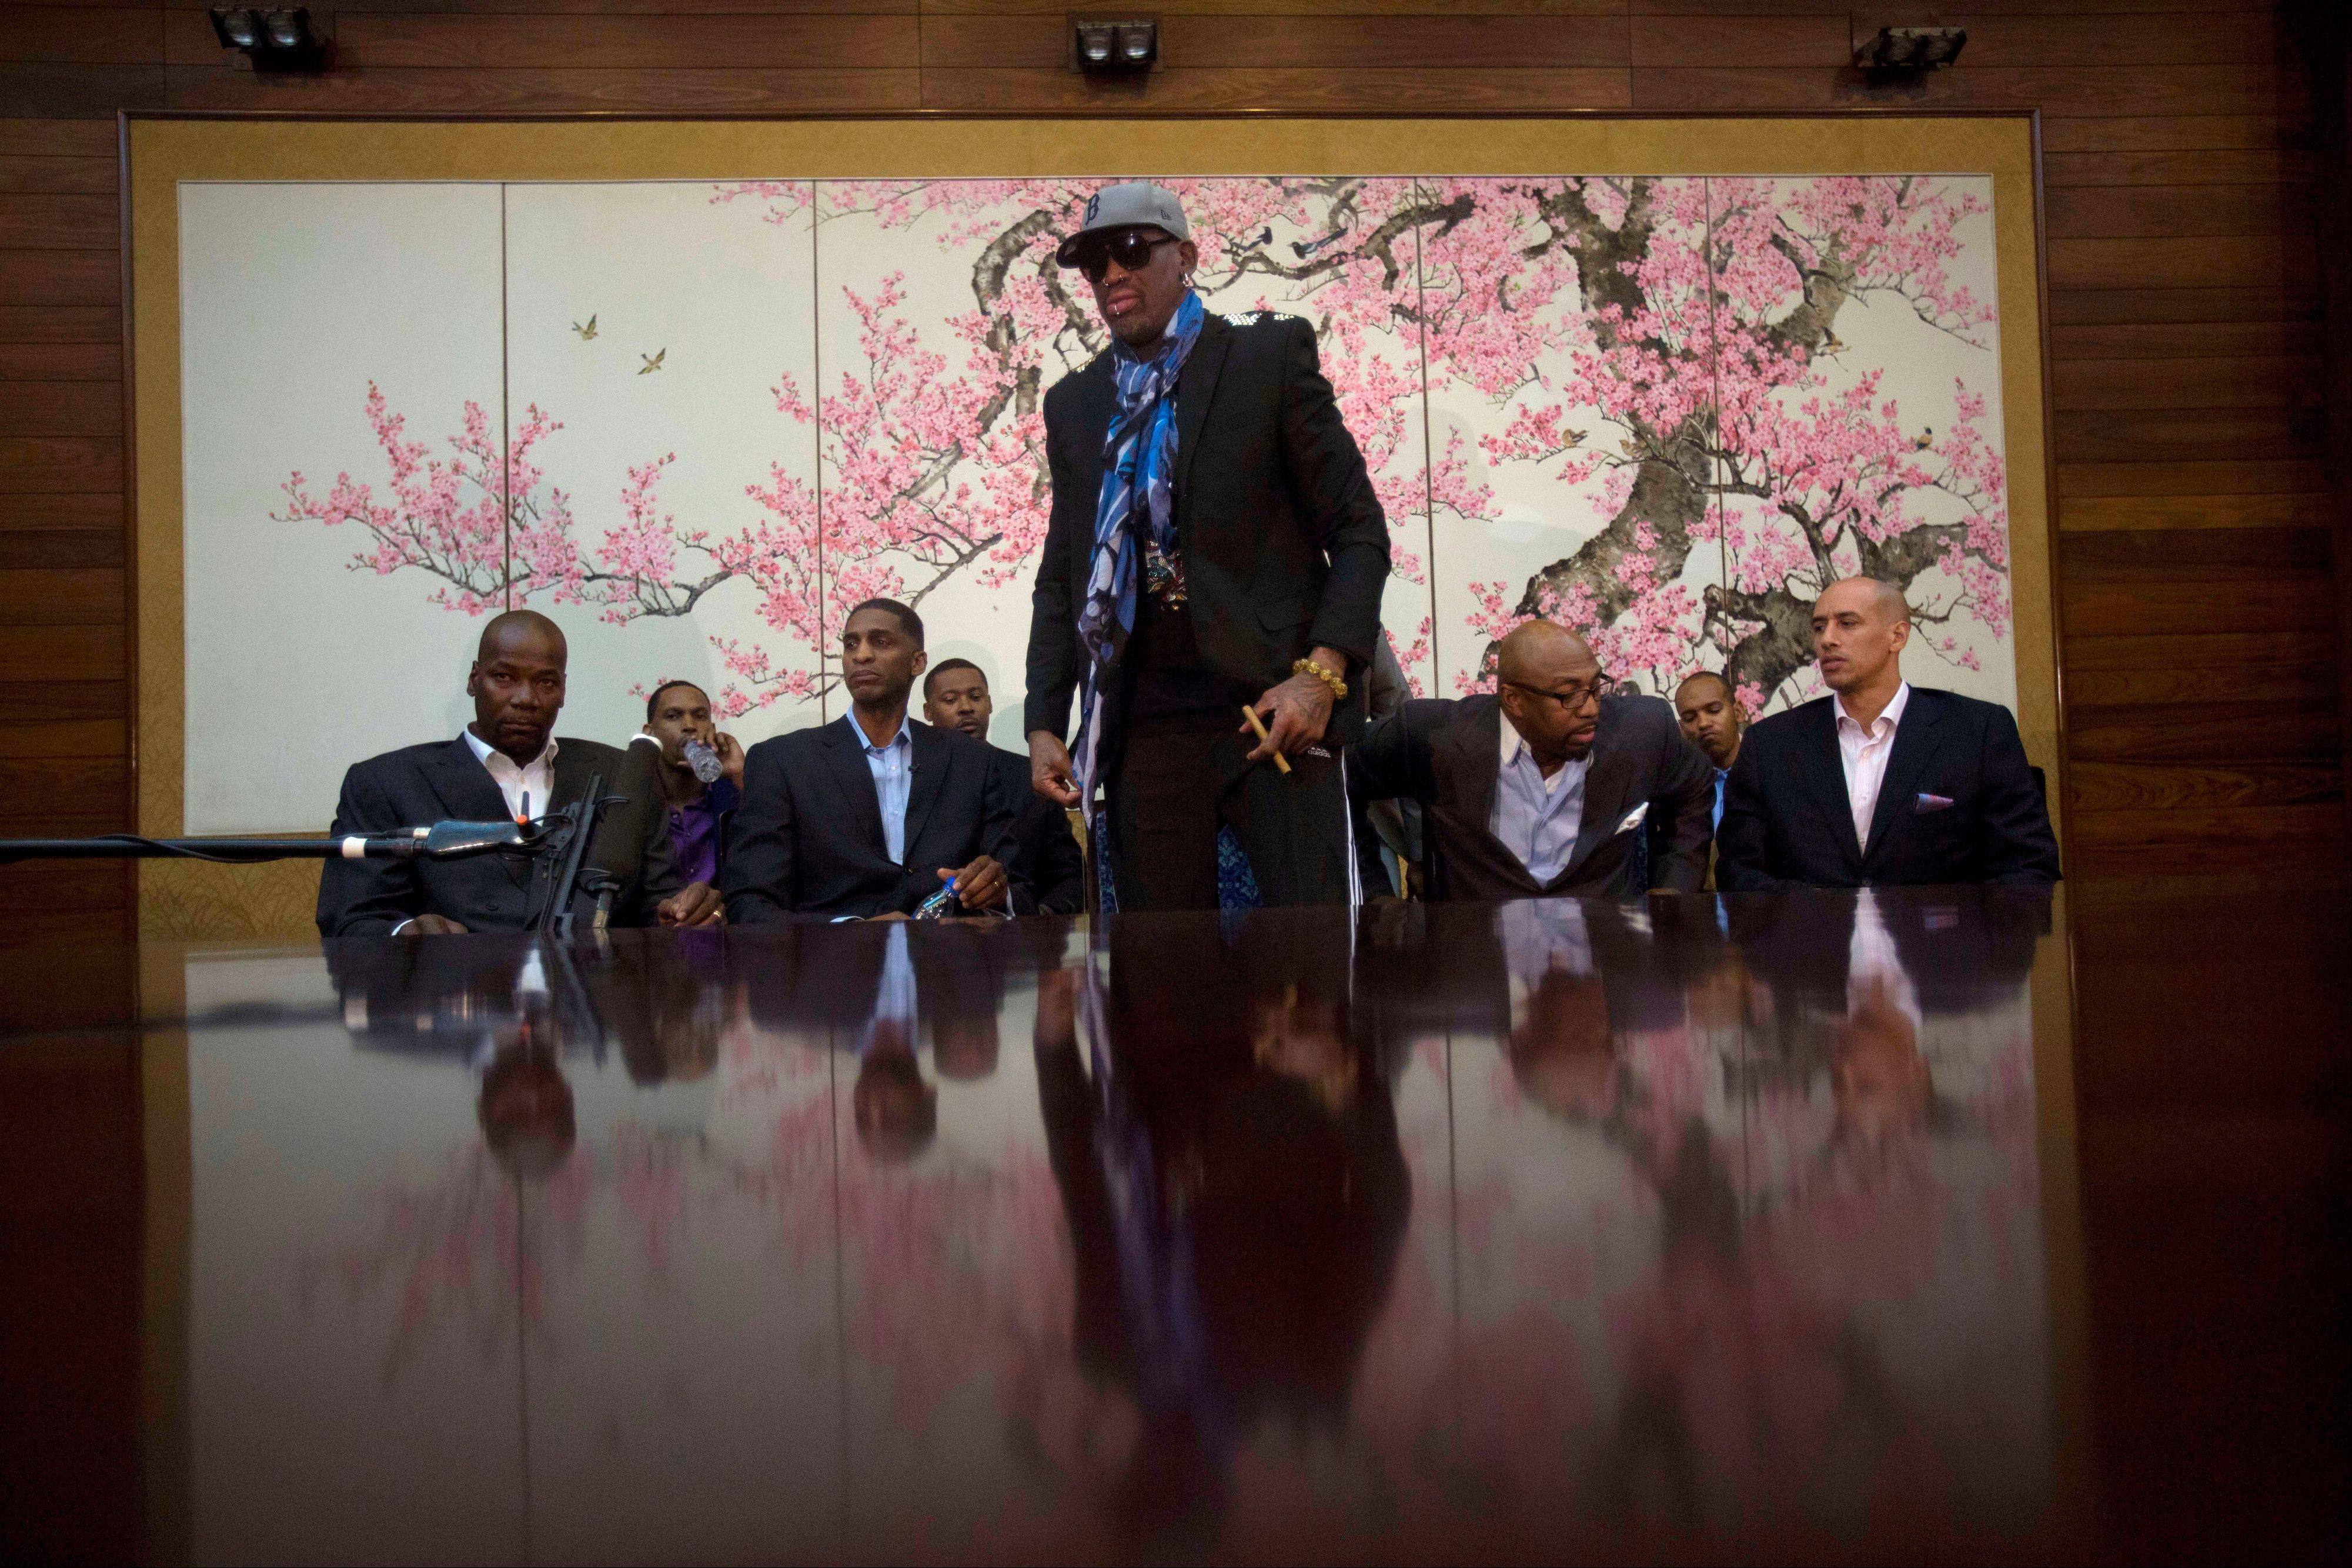 "Dennis Rodman stands up to leave after he and fellow U.S. basketball players completed a television interview at a Pyongyang, North Korea hotel Tuesday, Jan. 7, 2014. Rodman came to the North Korean capital with a team of USA basketball stars for an exhibition game on Jan. 8, the birthday of North Korean leader Kim Jong Un. From left to right are Cliff Robinson, Jerry Dupree, Charles D. Smith, unidentified, Vin Baker, Andre ""Silk"" Poole and Doug Christie."